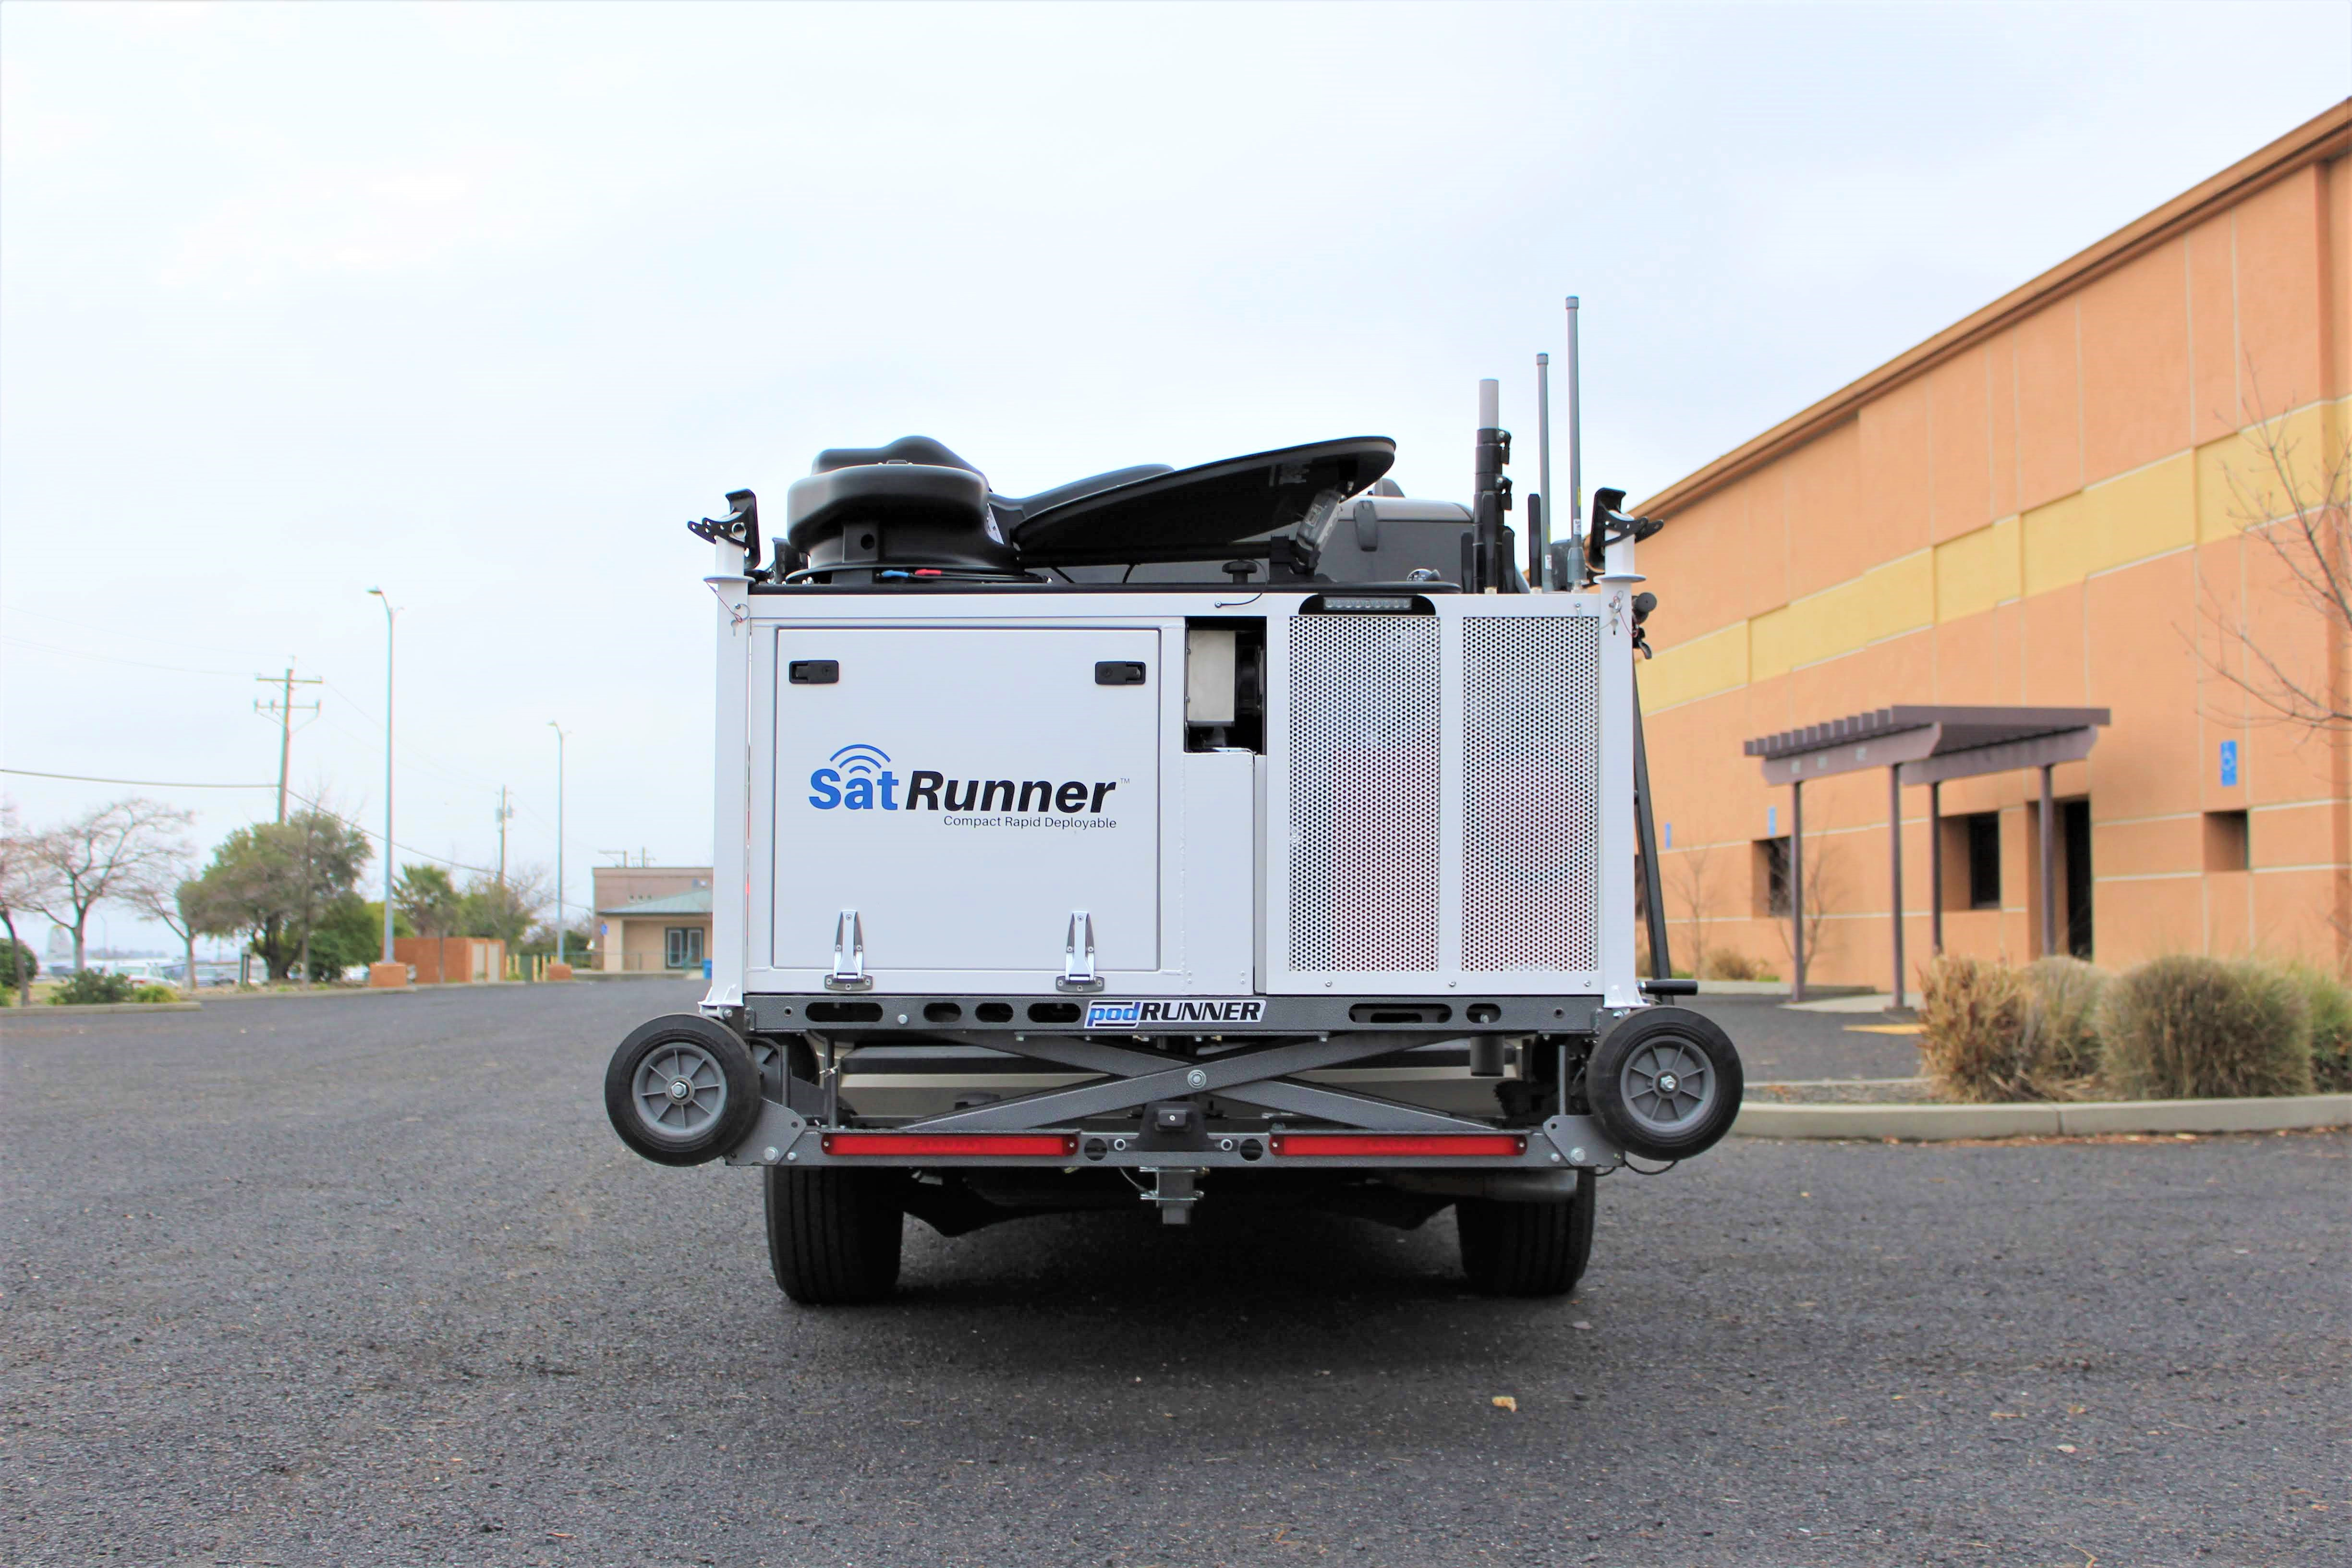 SatRunner loaded up on the back of a SUV